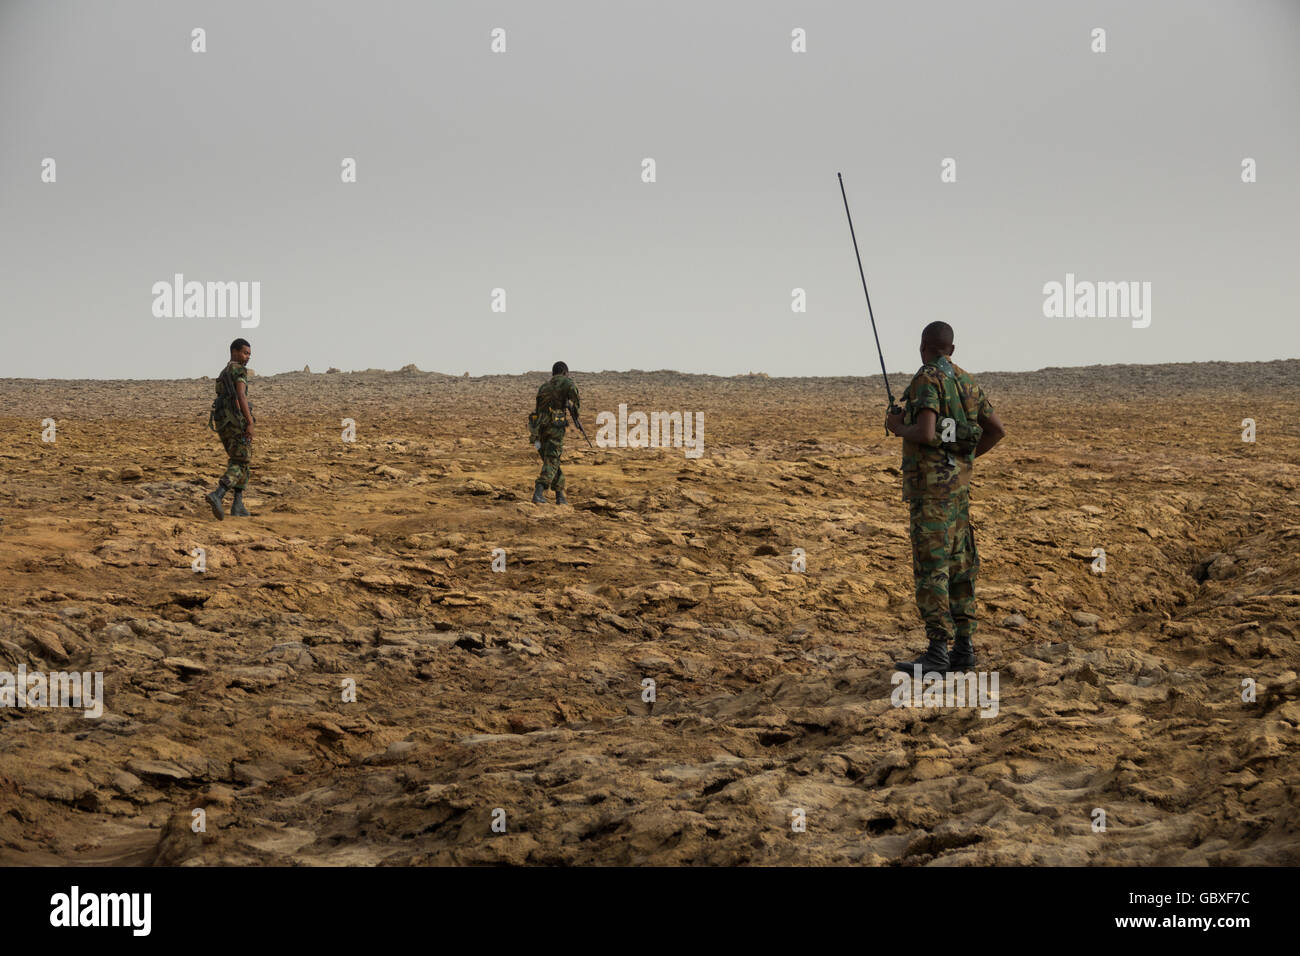 a military patrol stands guard at Dallol, Ethiopia, around 20km from the Eritrean border Stock Photo